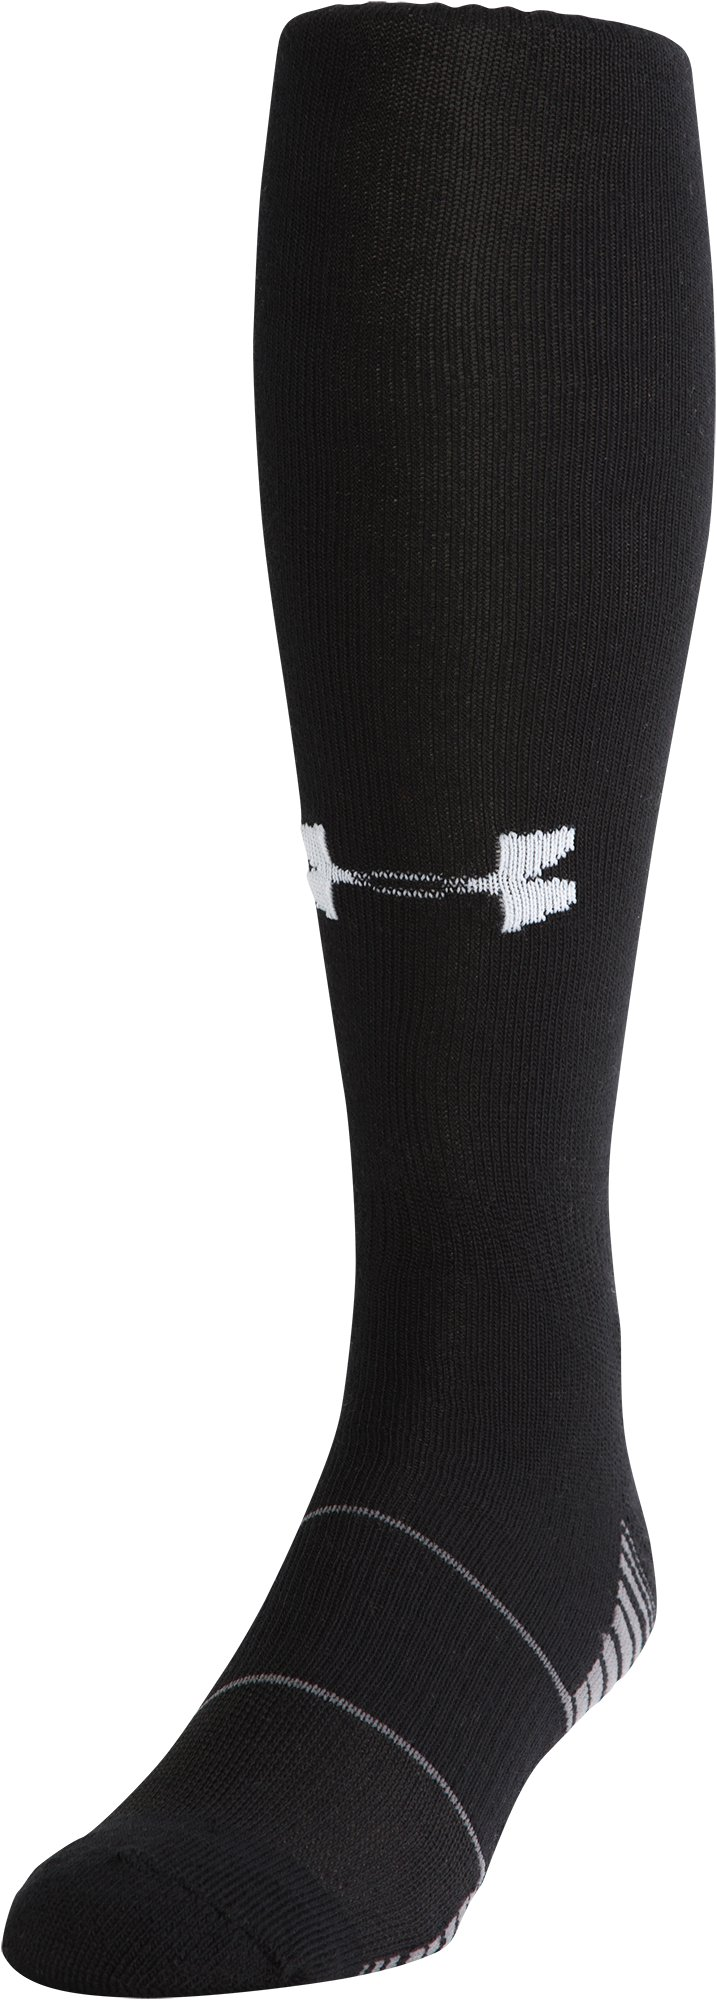 UA Over-The-Calf Team Socks, Black , zoomed image